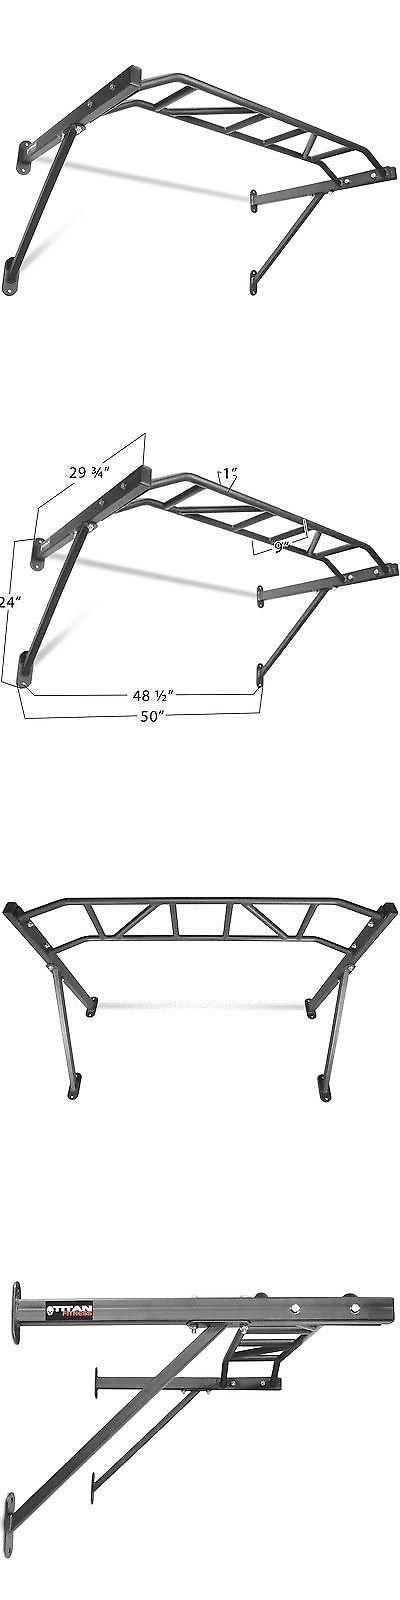 Pull Up Bars 179816: Titan Fitness Hd Multi Grip Wall Mounted Pull Up Bar Chin Up Steel 48 Wide Grip -> BUY IT NOW ONLY: $70 on eBay!